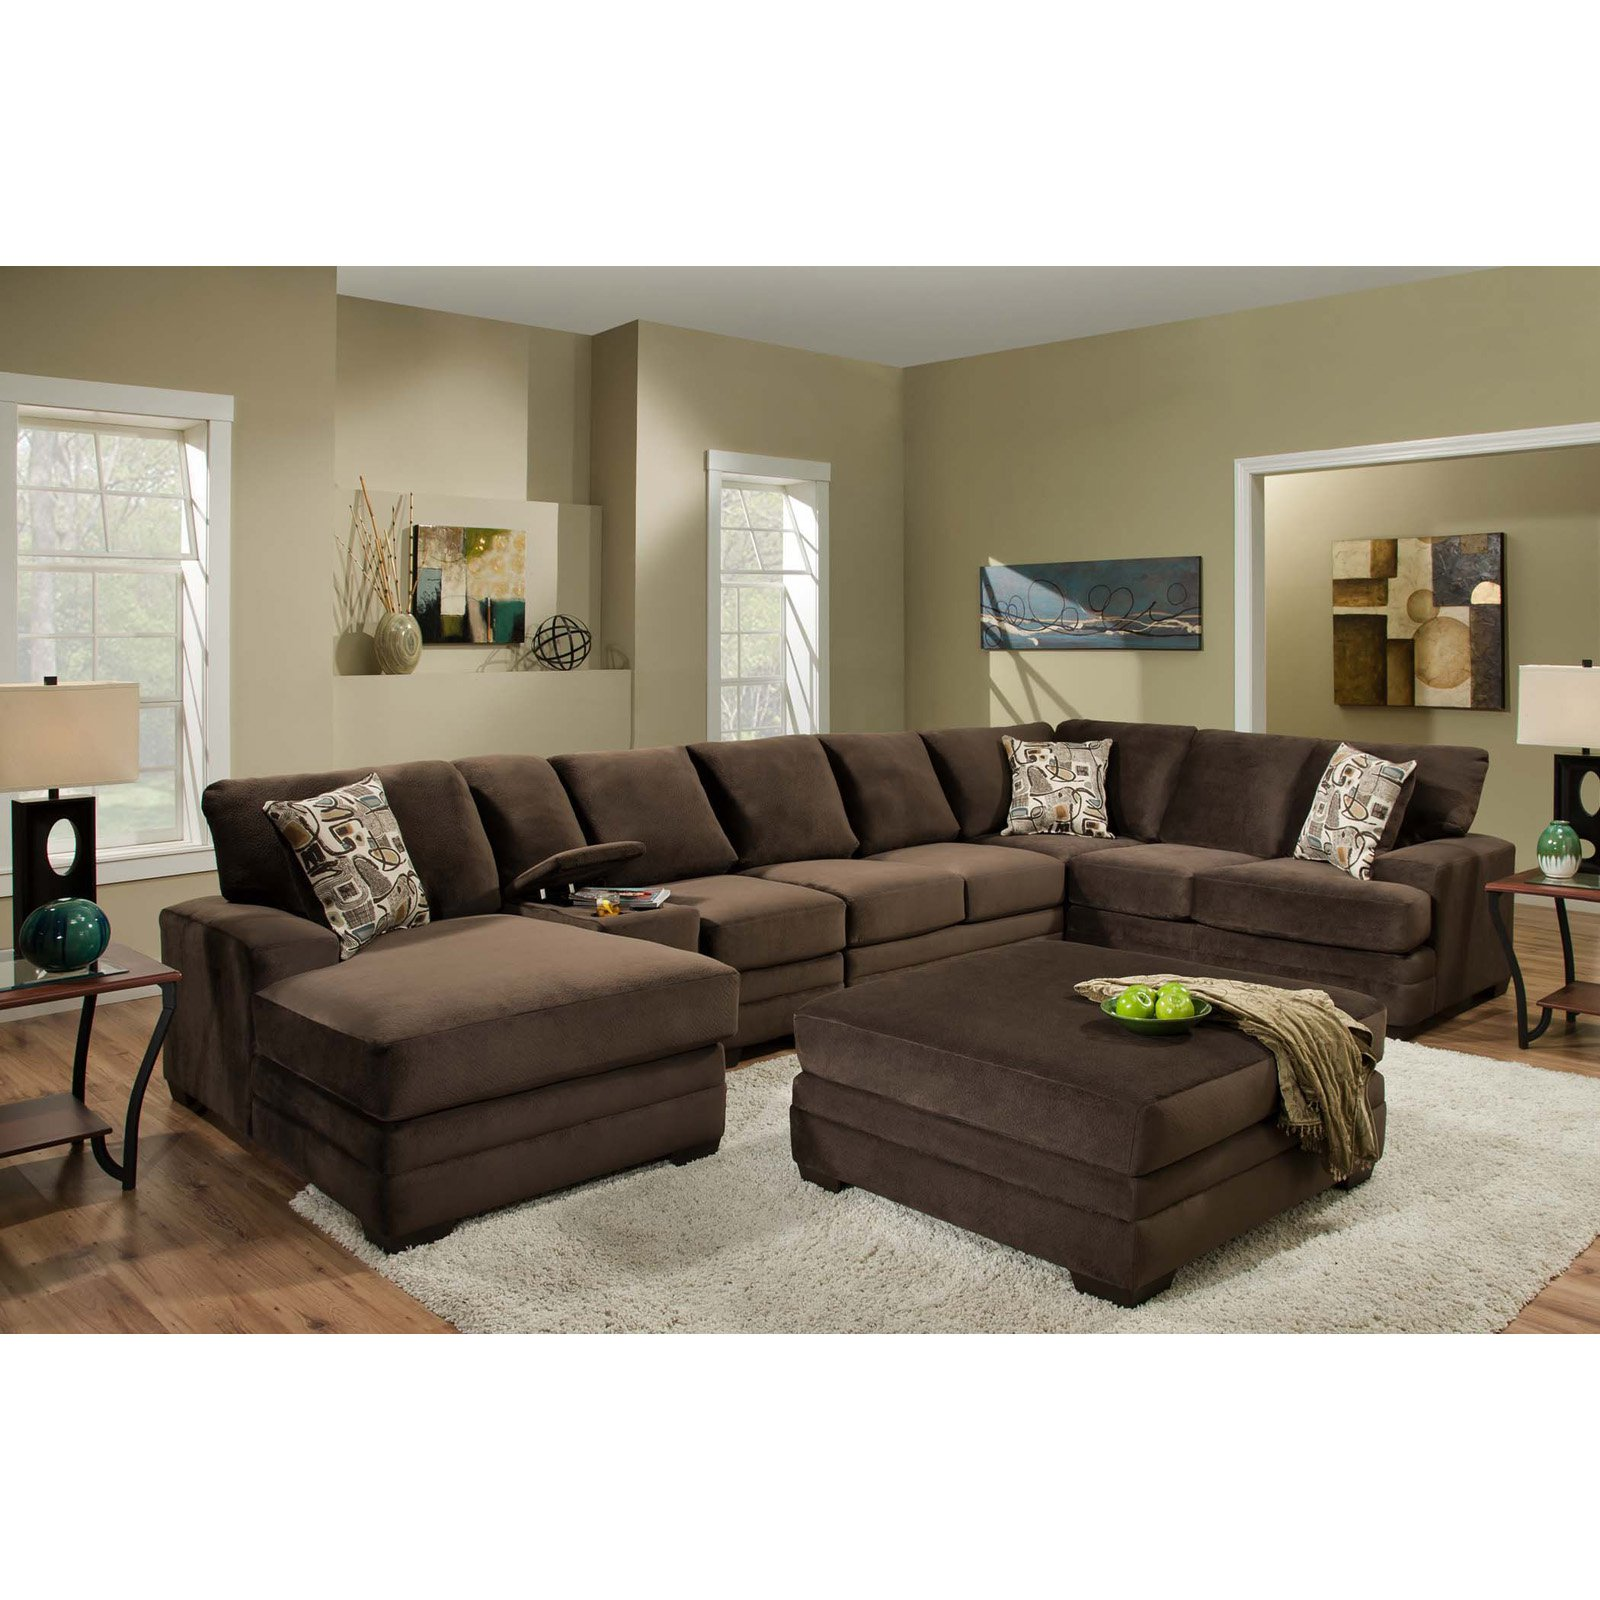 Chelsea Home Furniture Barstow 6 Piece Sectional Sofa